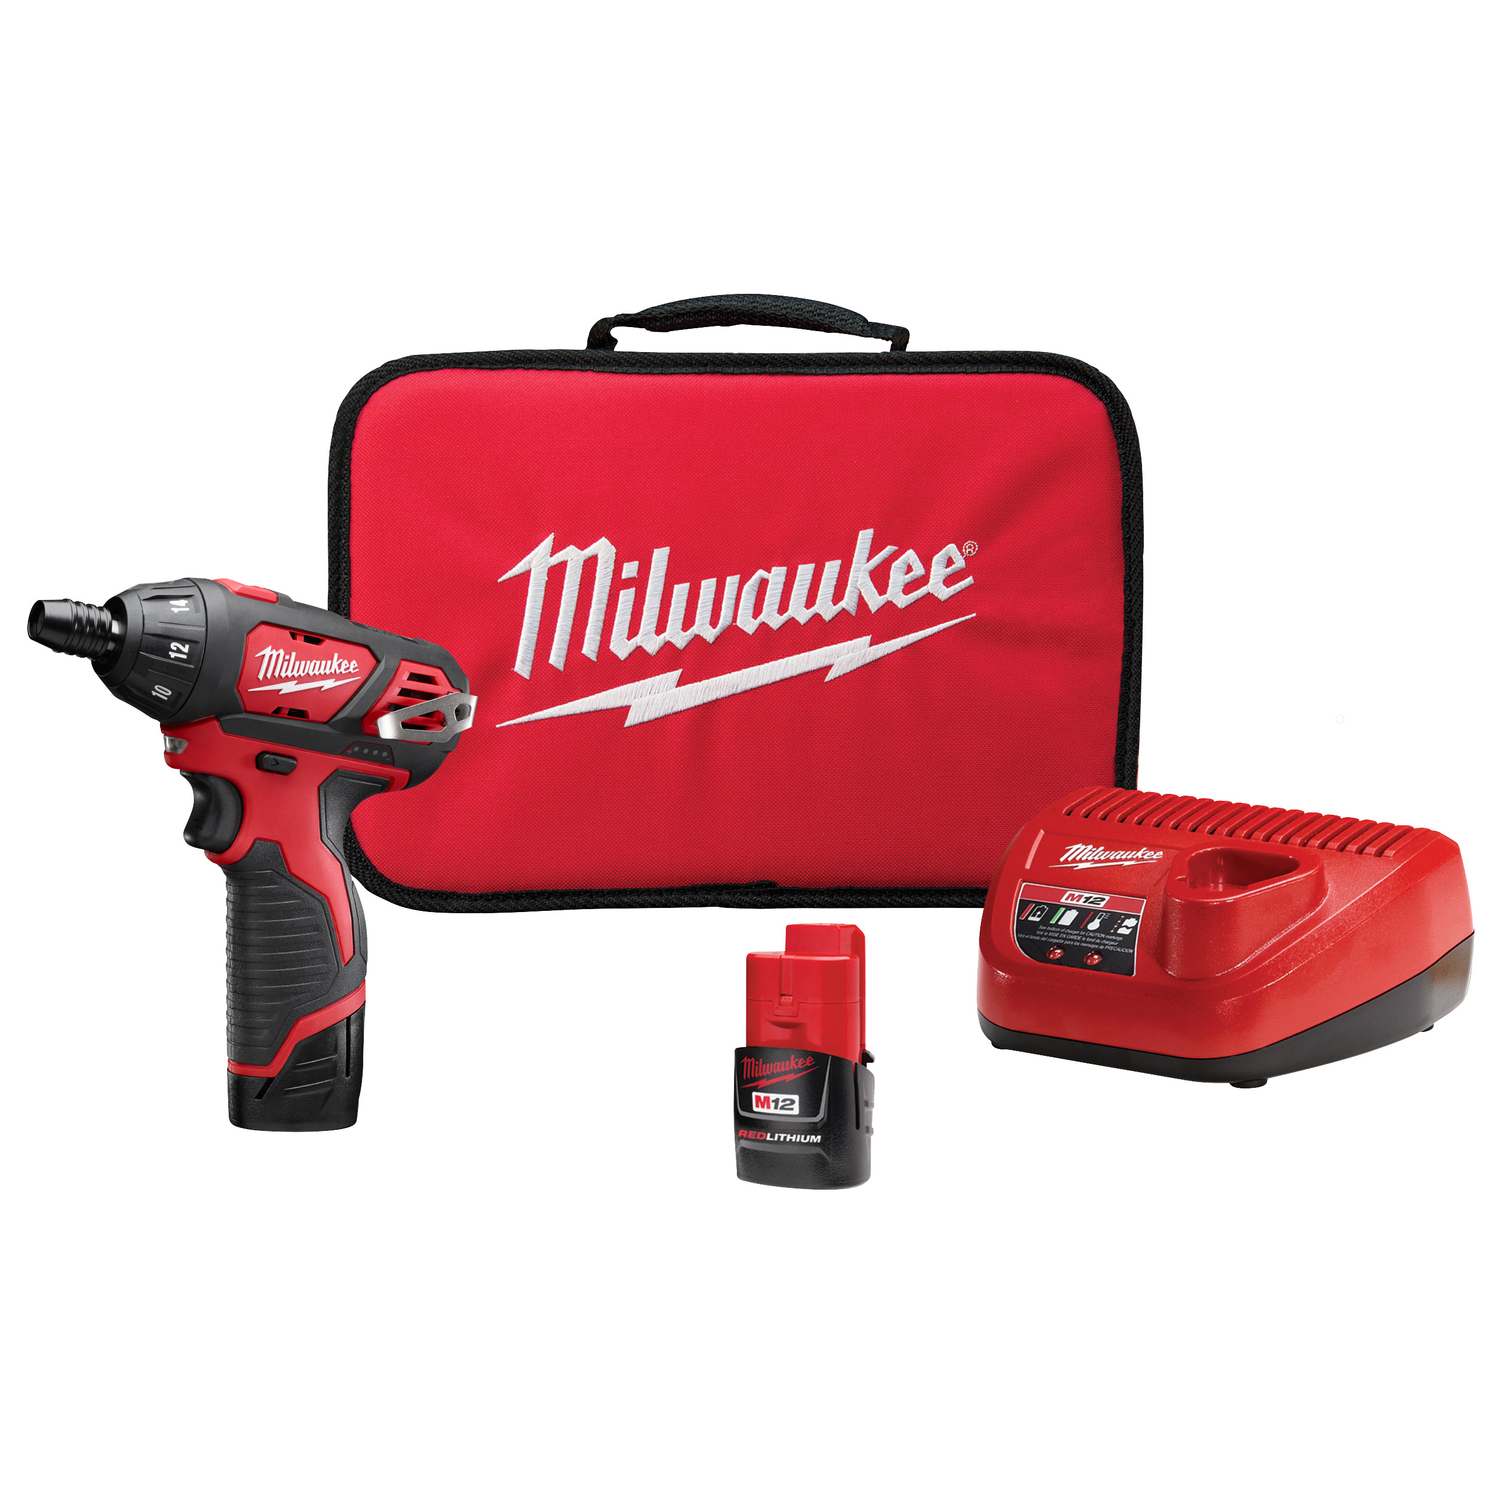 Milwaukee  M12  1/4  Keyless  Cordless  Battery Operated Screwdriver  12 volt 1.5 amps 500 rpm 1 pc.